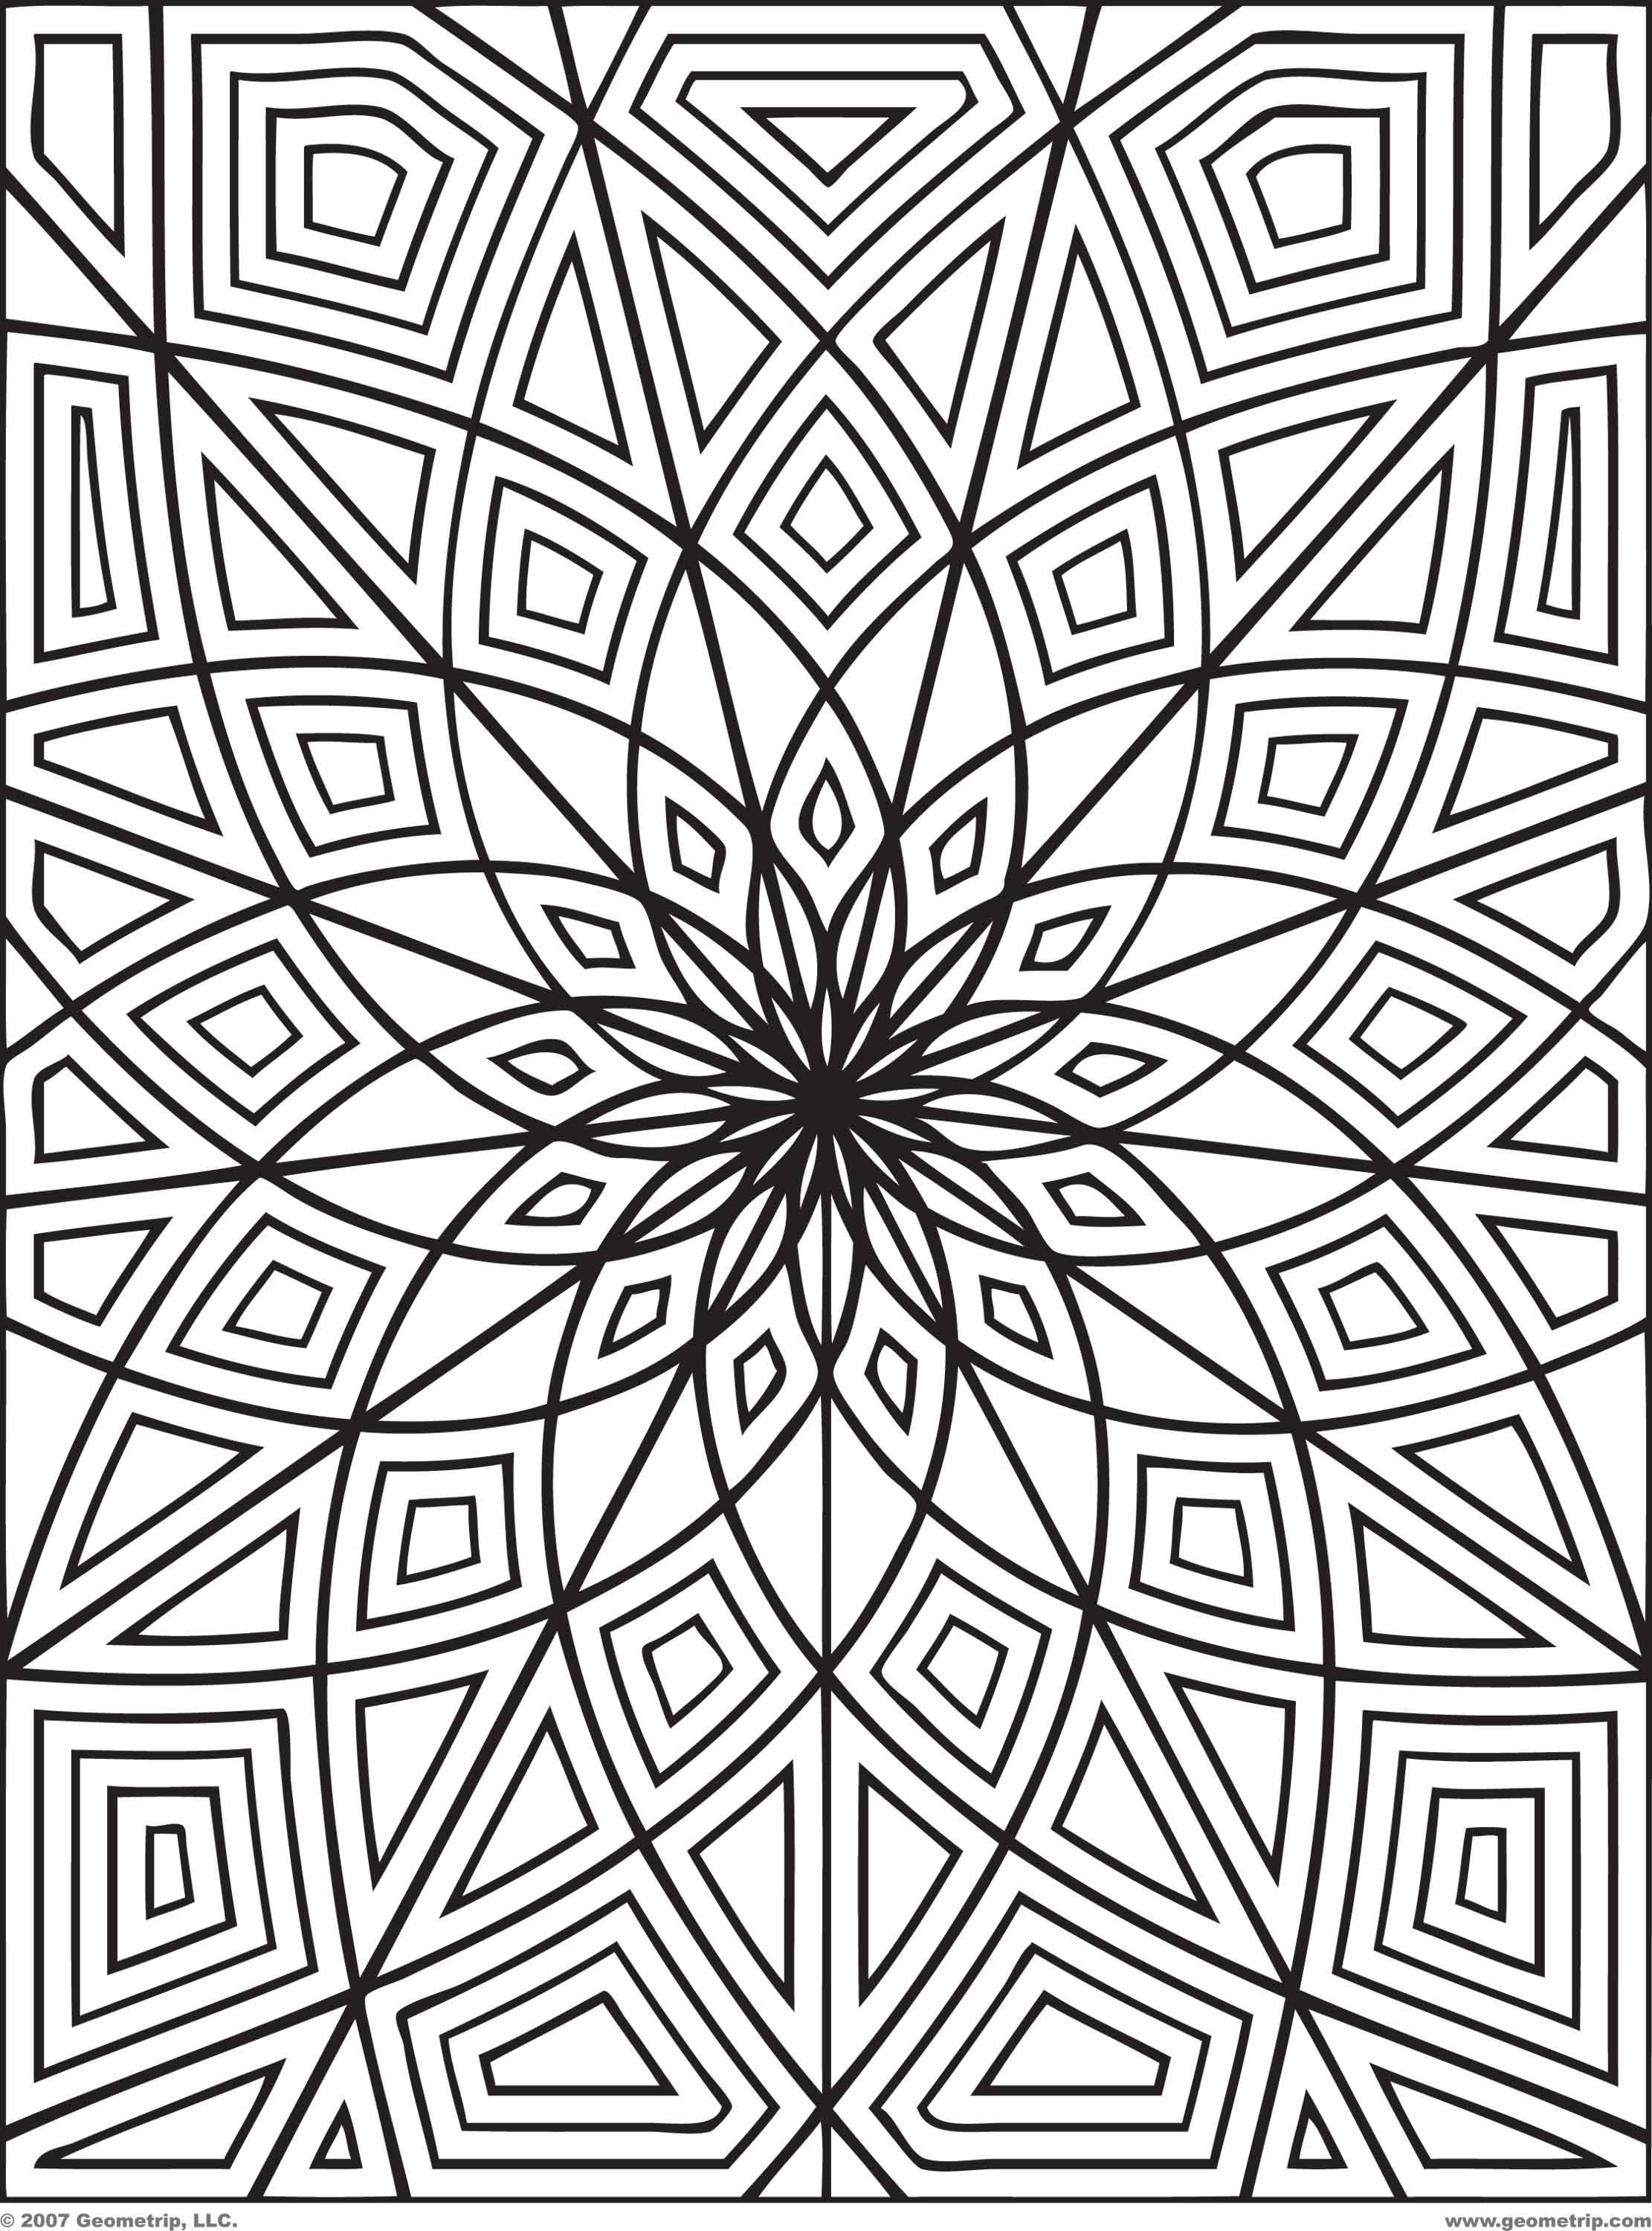 Detailed Coloring Pages  SelfColoringPagescom Wallpaper